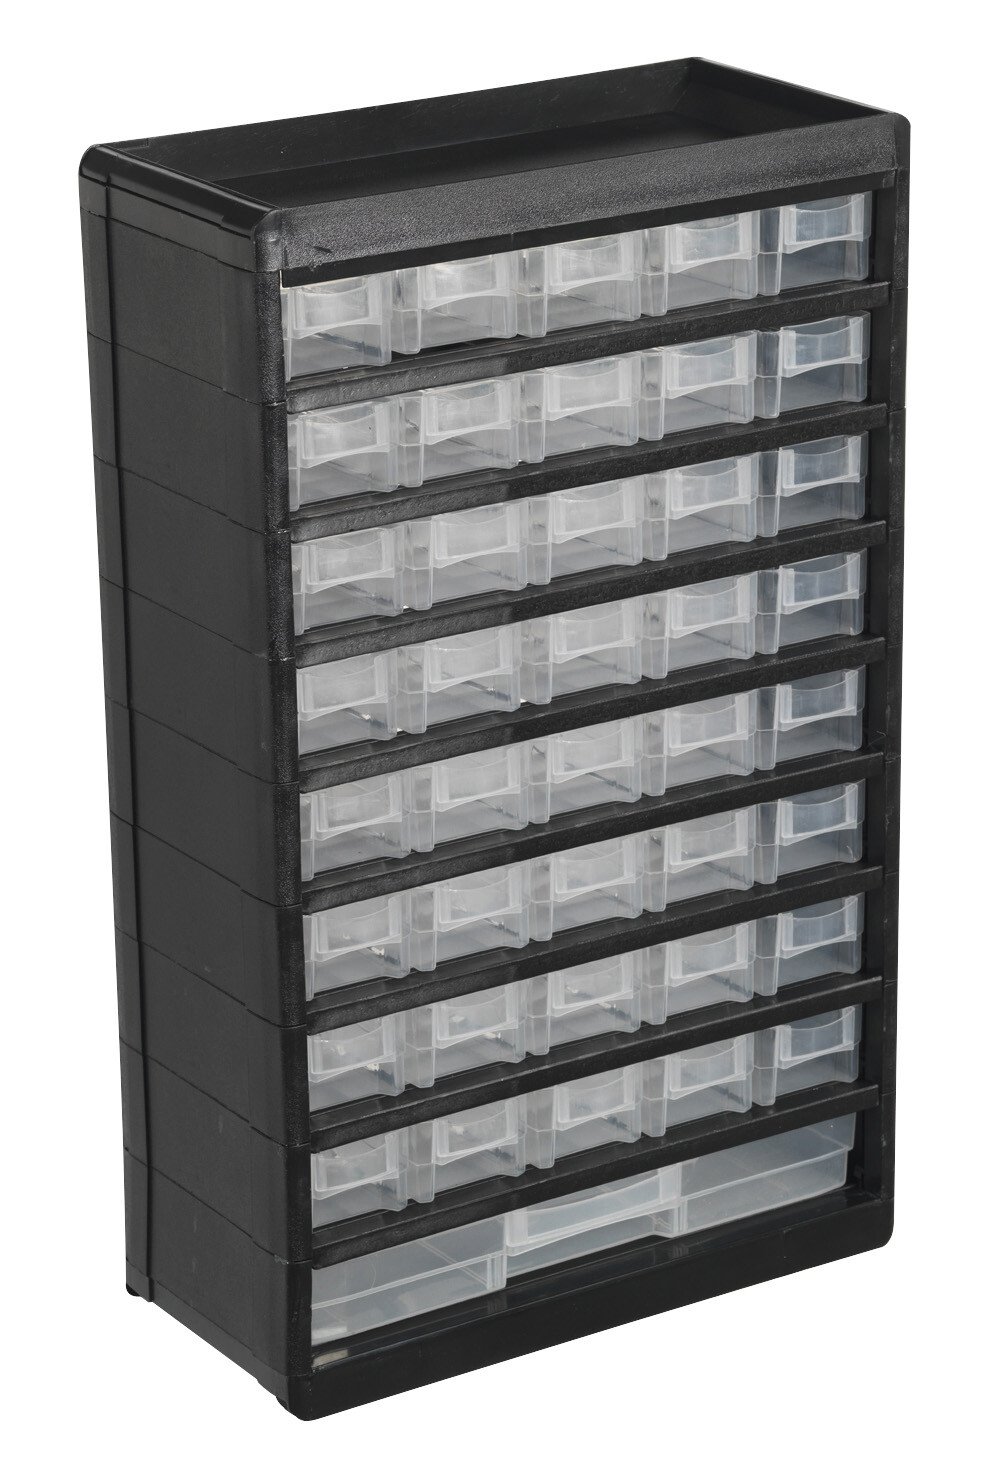 Sealey Apdc41 Cabinet Box 41 Drawer From Lawson His